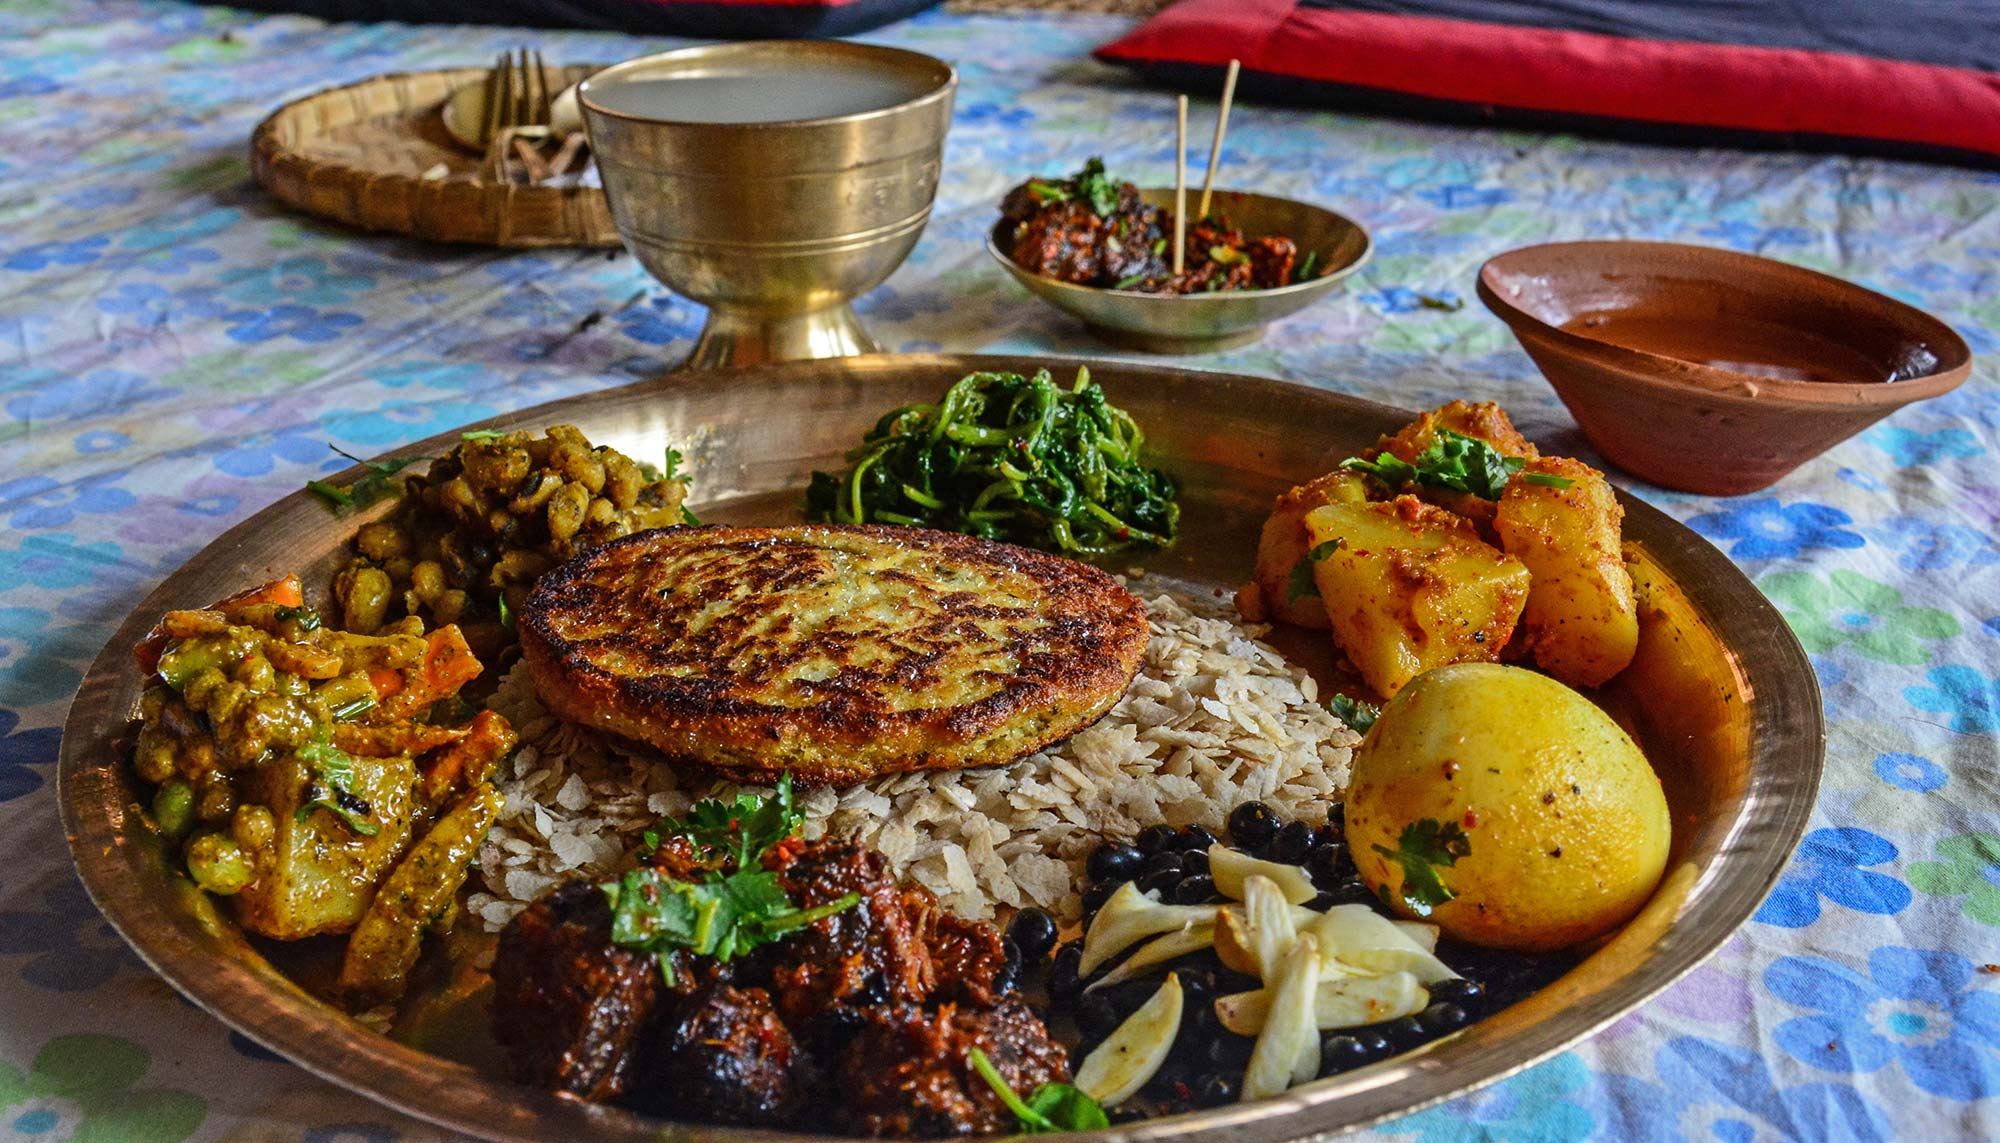 Must try food when in Nepal